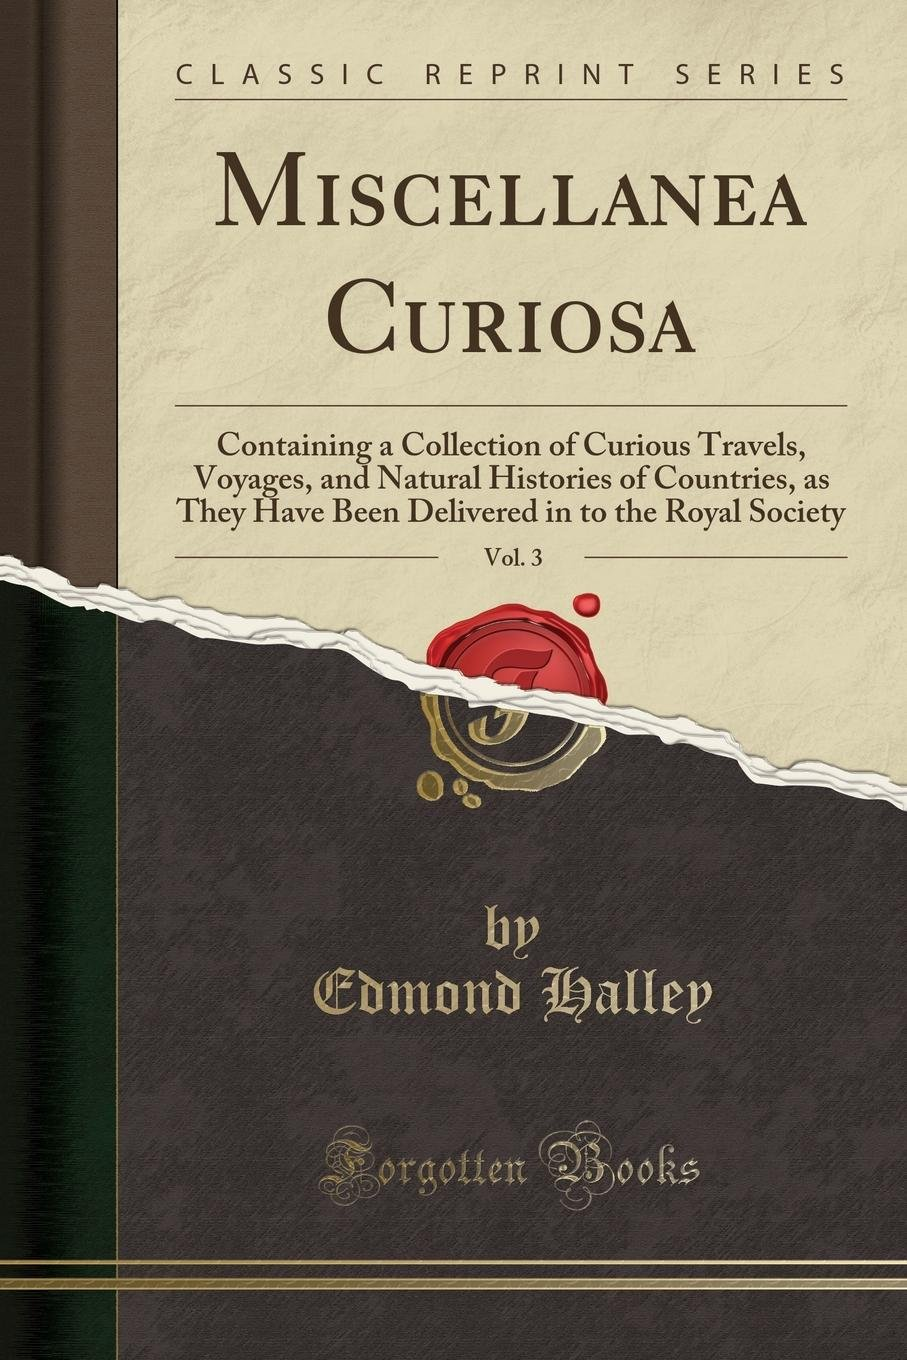 Read Online Miscellanea Curiosa, Vol. 3: Containing a Collection of Curious Travels, Voyages, and Natural Histories of Countries, as They Have Been Delivered in to the Royal Society (Classic Reprint) pdf epub